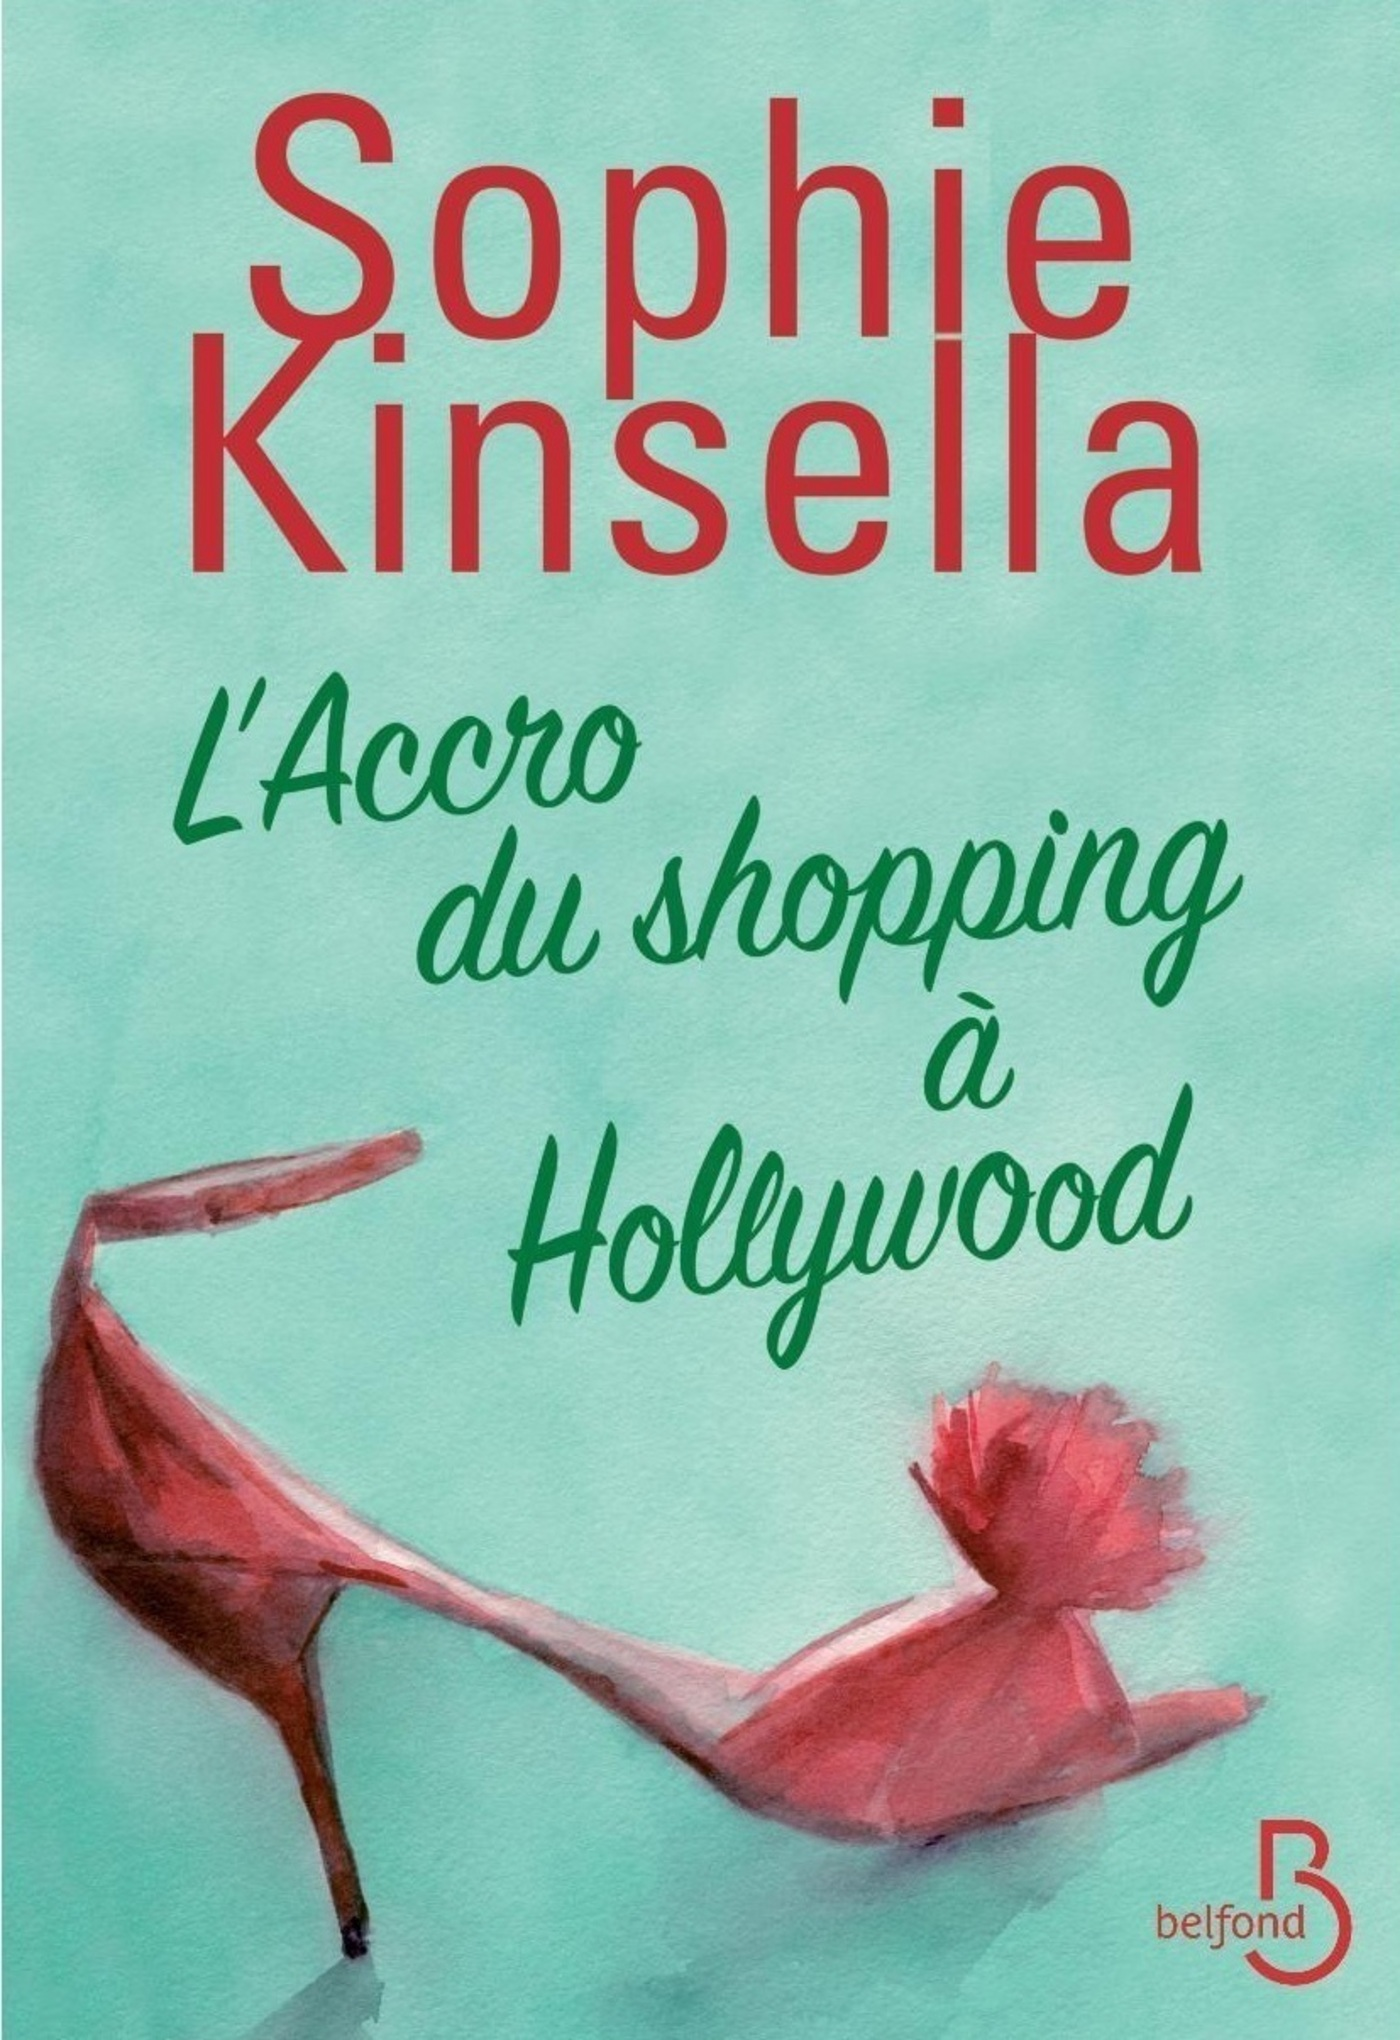 L'accro du shopping à Hollywood